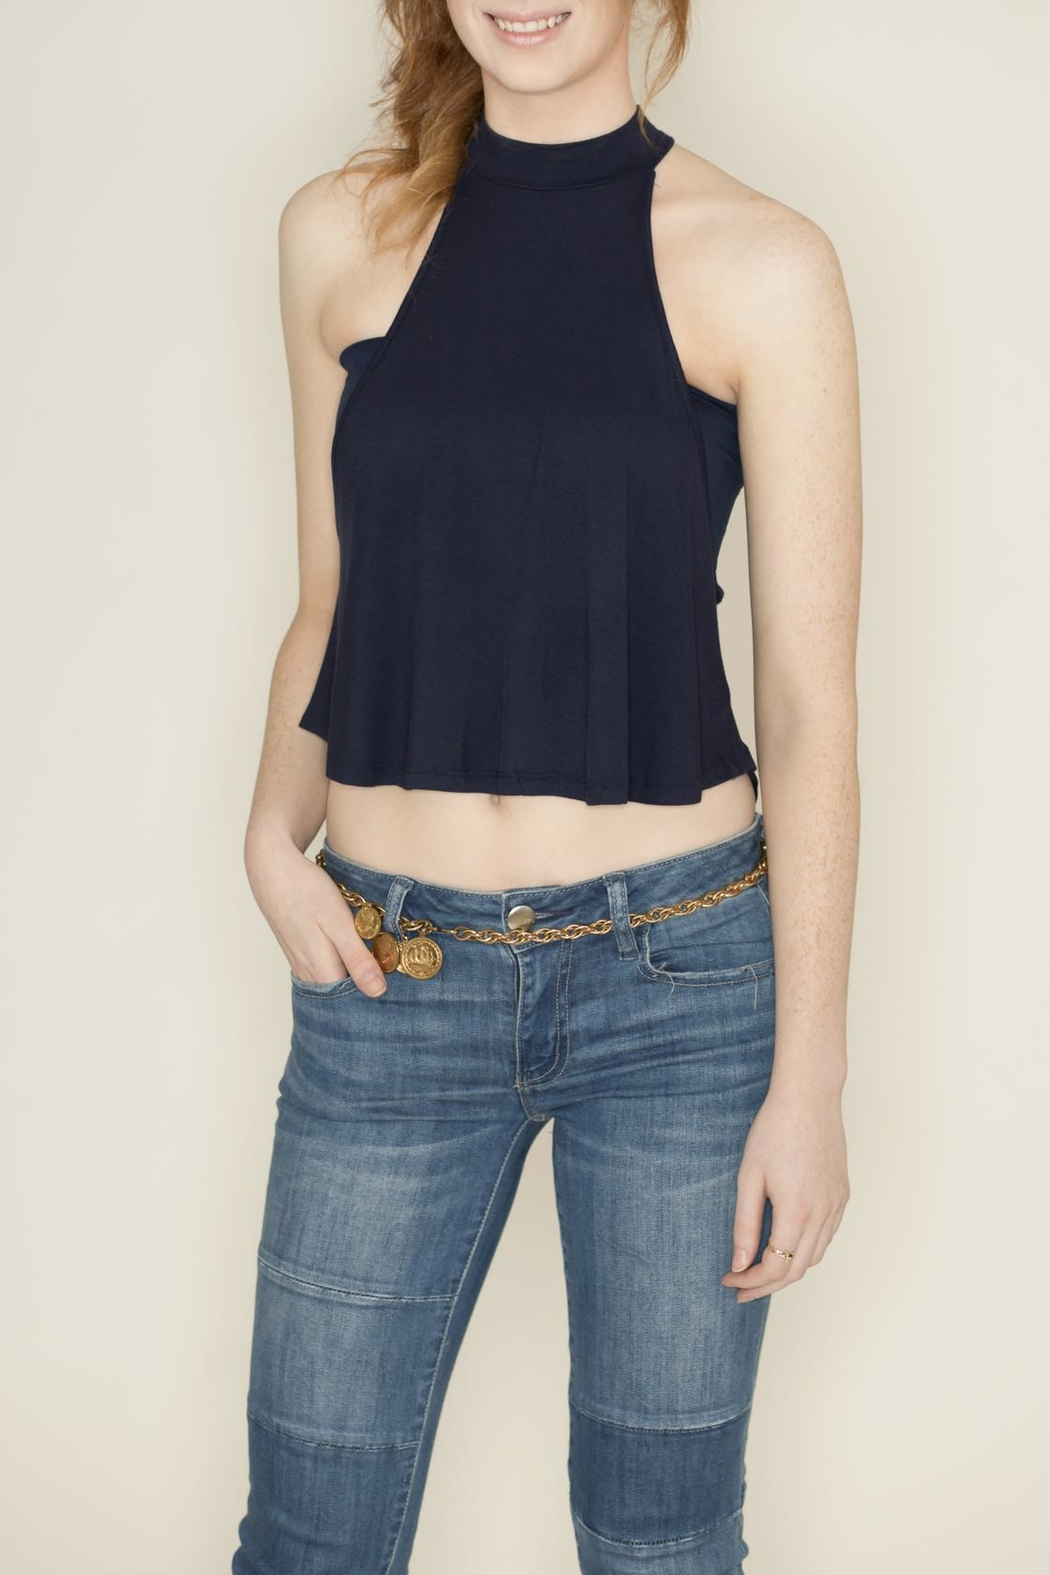 Zenana Outfitters Navy Sleeveless Crop Top - Main Image